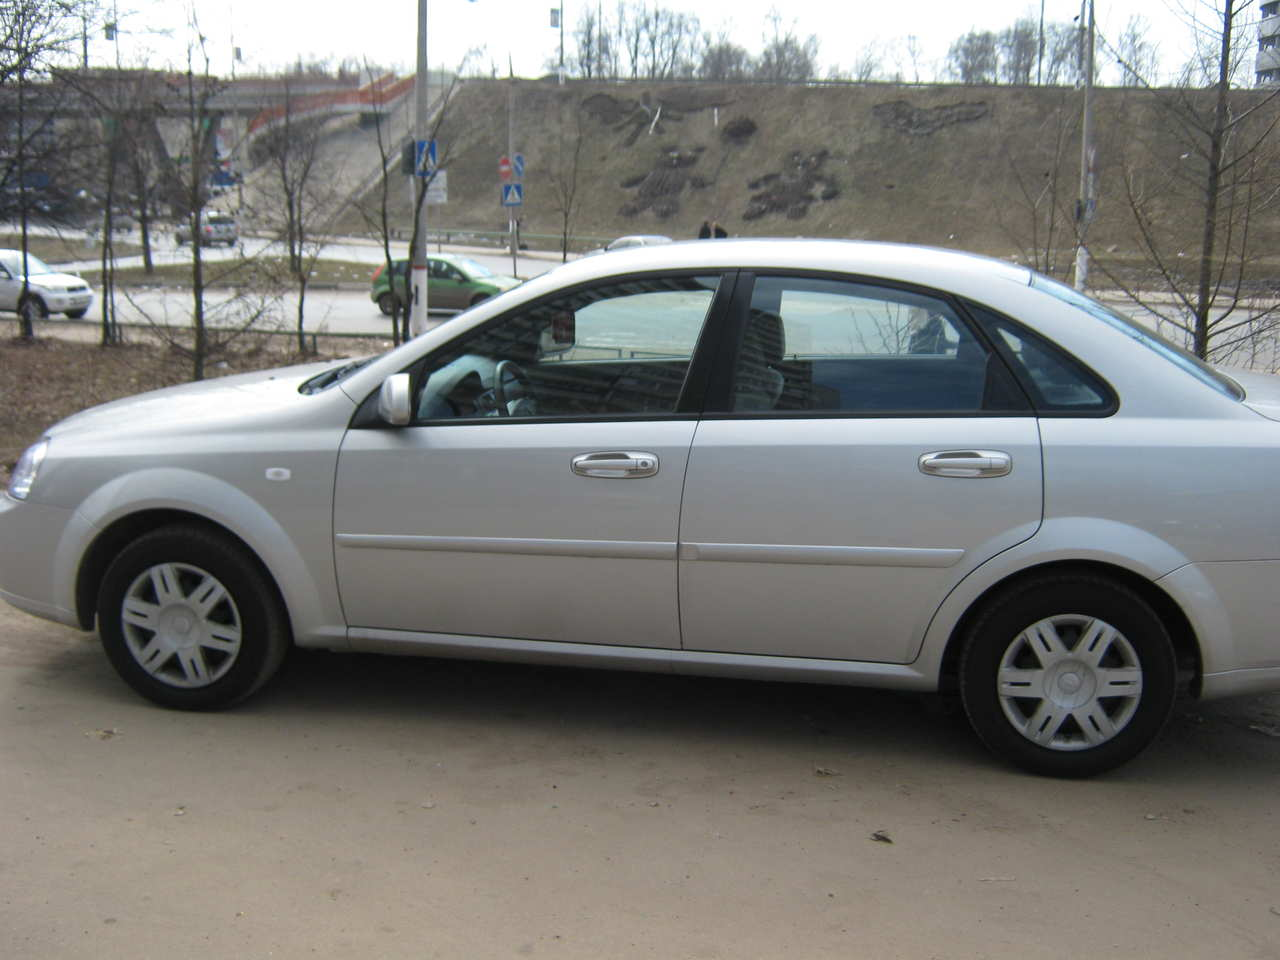 used 2008 chevrolet lacetti photos 1300cc gasoline manual for sale. Black Bedroom Furniture Sets. Home Design Ideas